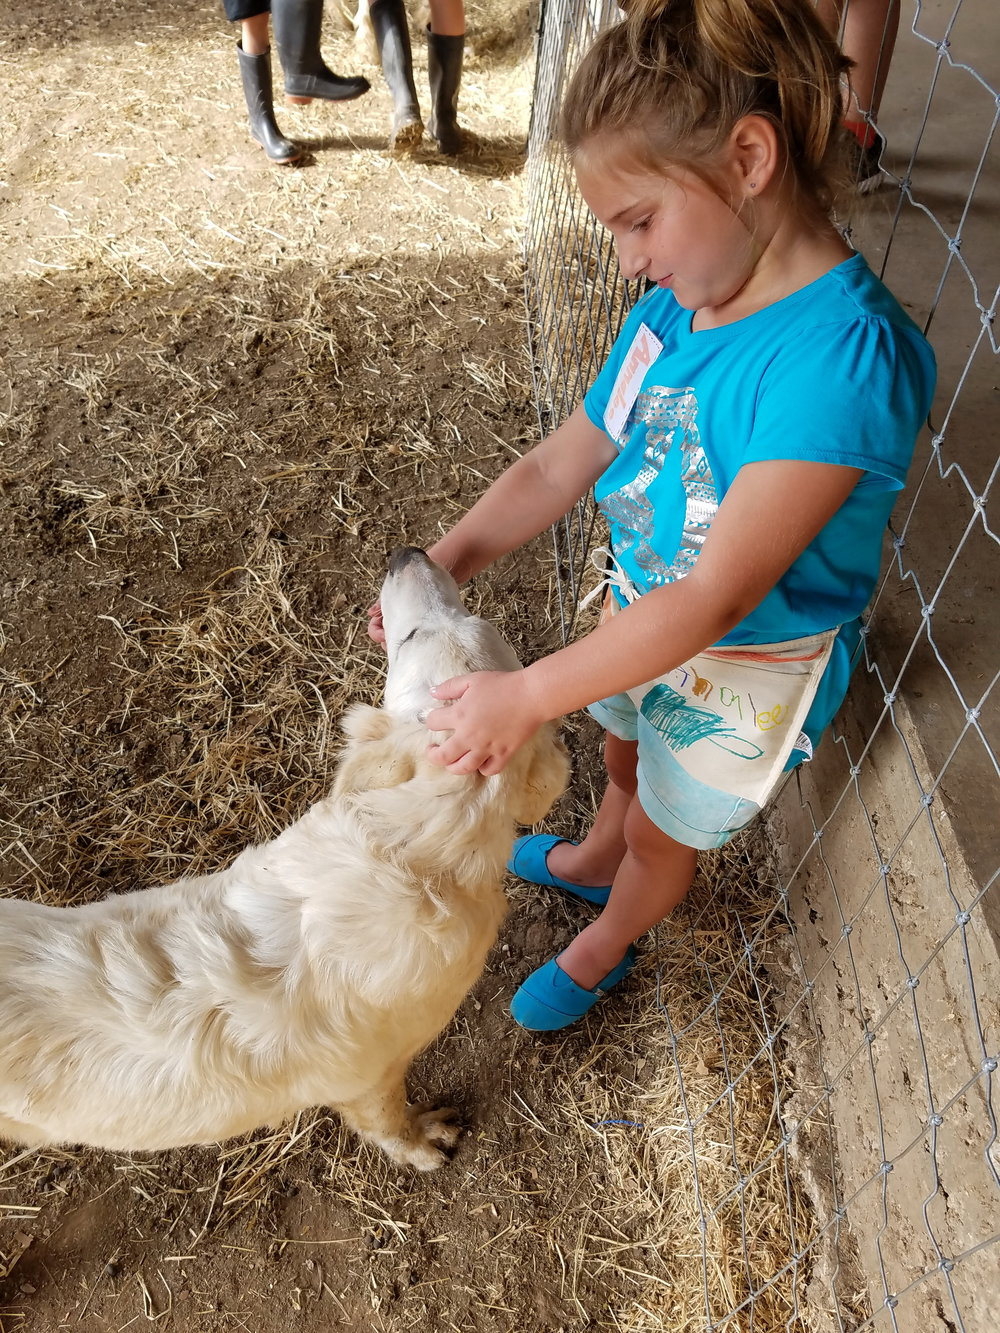 The farm dogs are not pets, but they still love attention when they can get it. They very much enjoy when little people visit the farm.